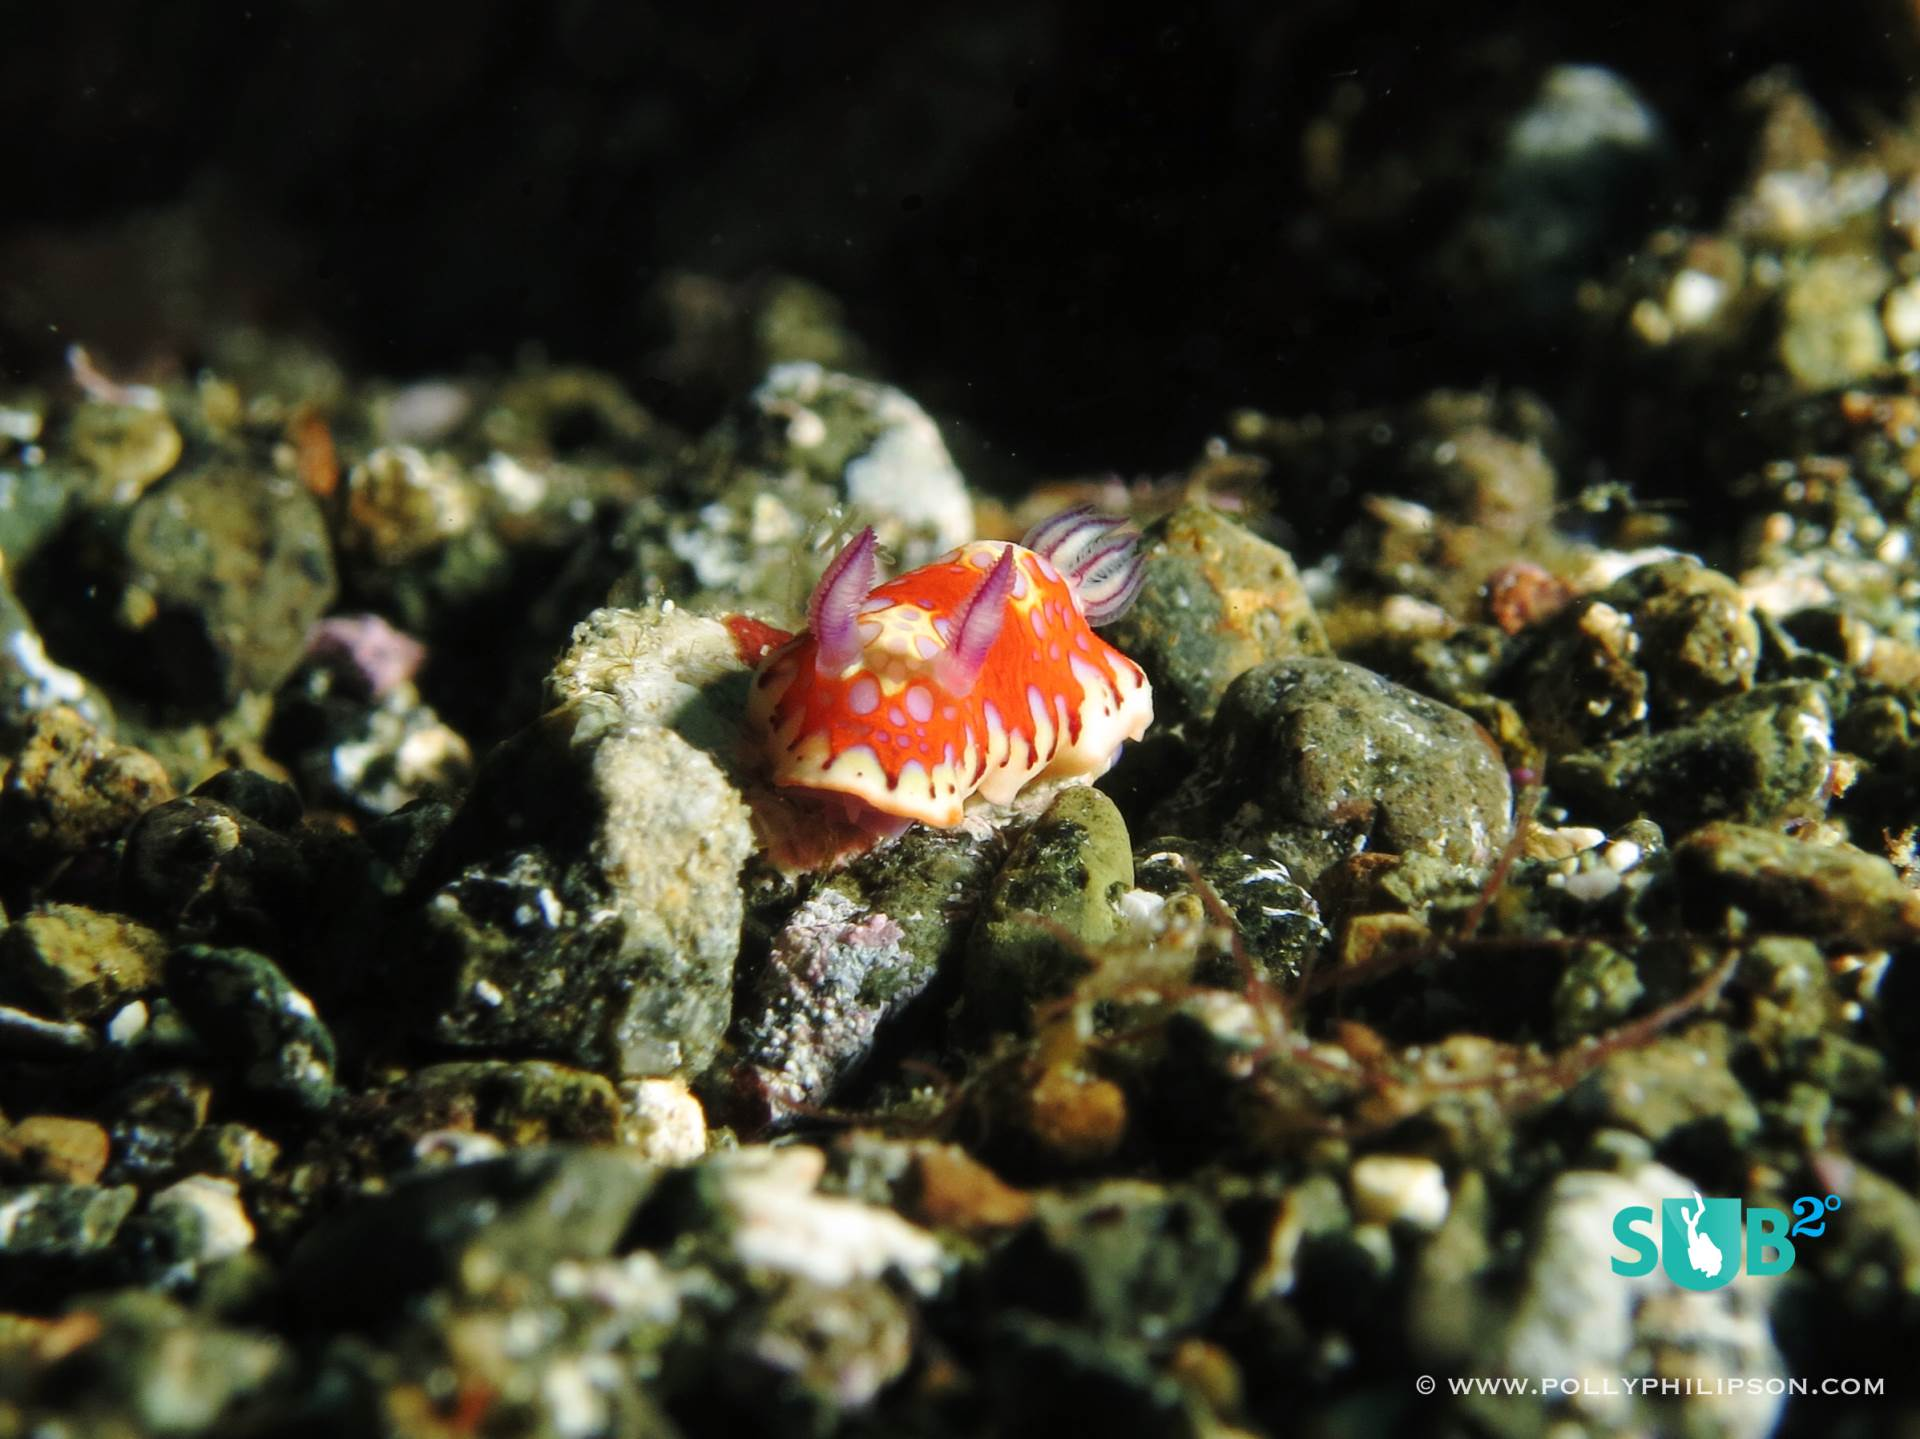 A variety of nudibranchs are waiting to be found in the shallower areas around Speyside. We recorded new depth ratings for many species, like this harlequin blue sea goddess.